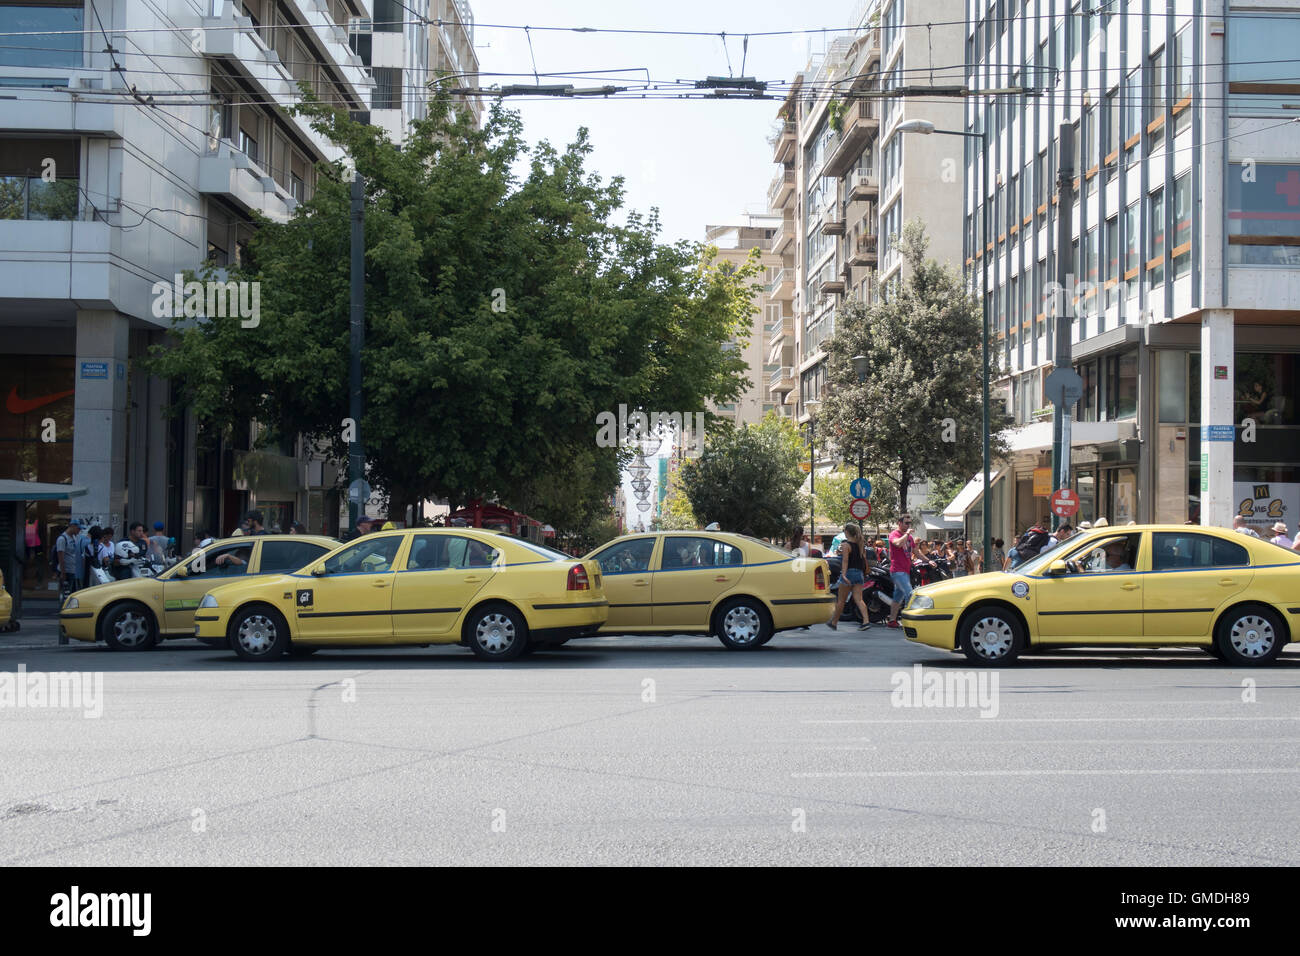 Athens, Greece - August 06 2016: Yellow taxis on Syntagma square. - Stock Image